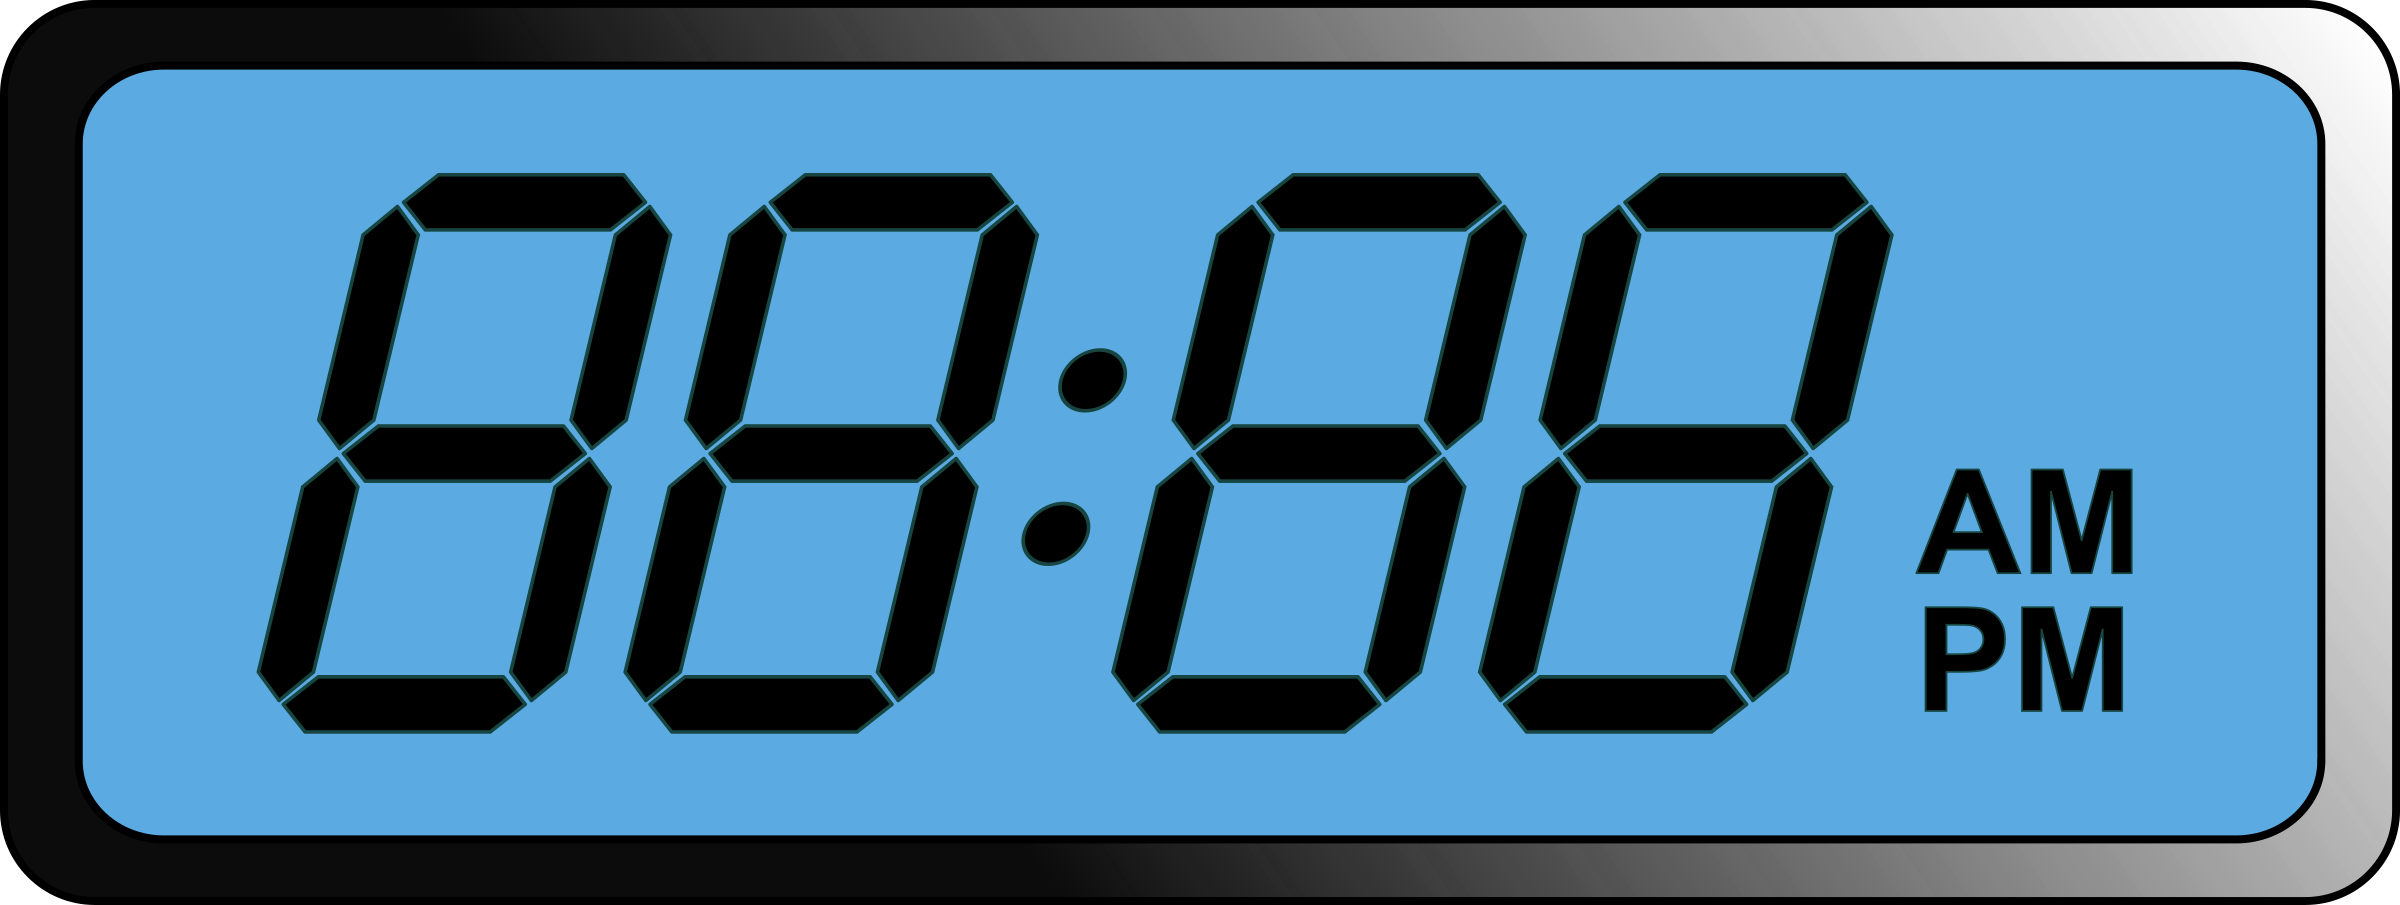 Digital LCD Clock by Schplook